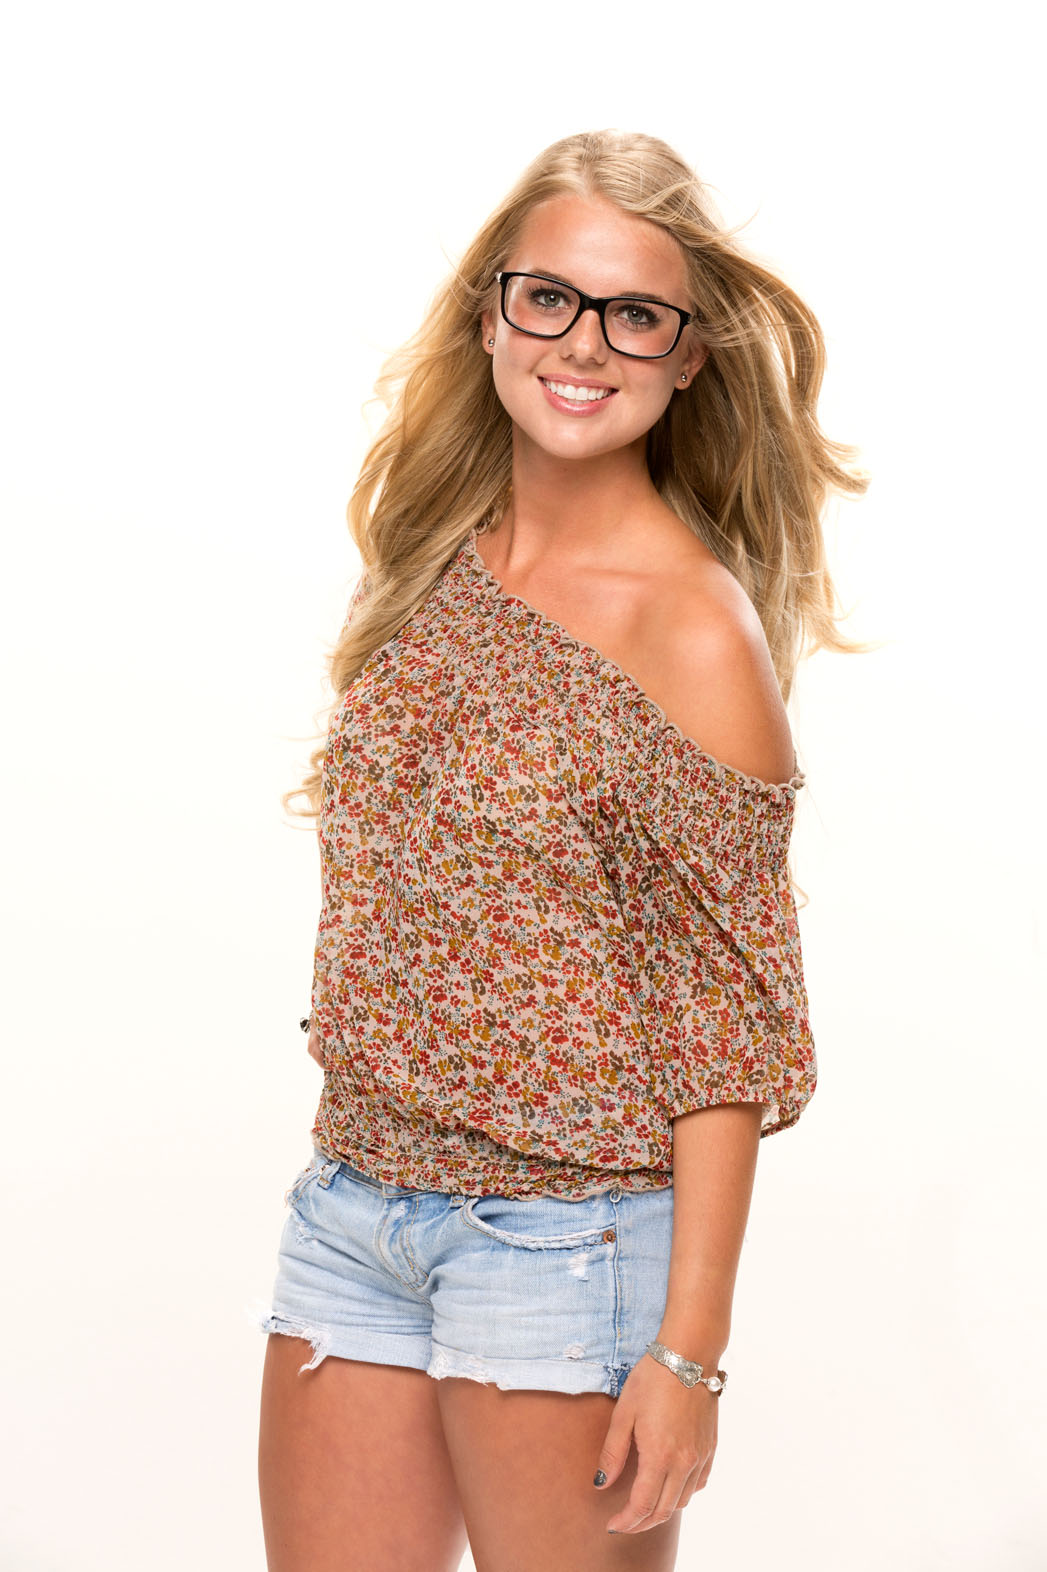 Image result for NICOLE FRANZEL